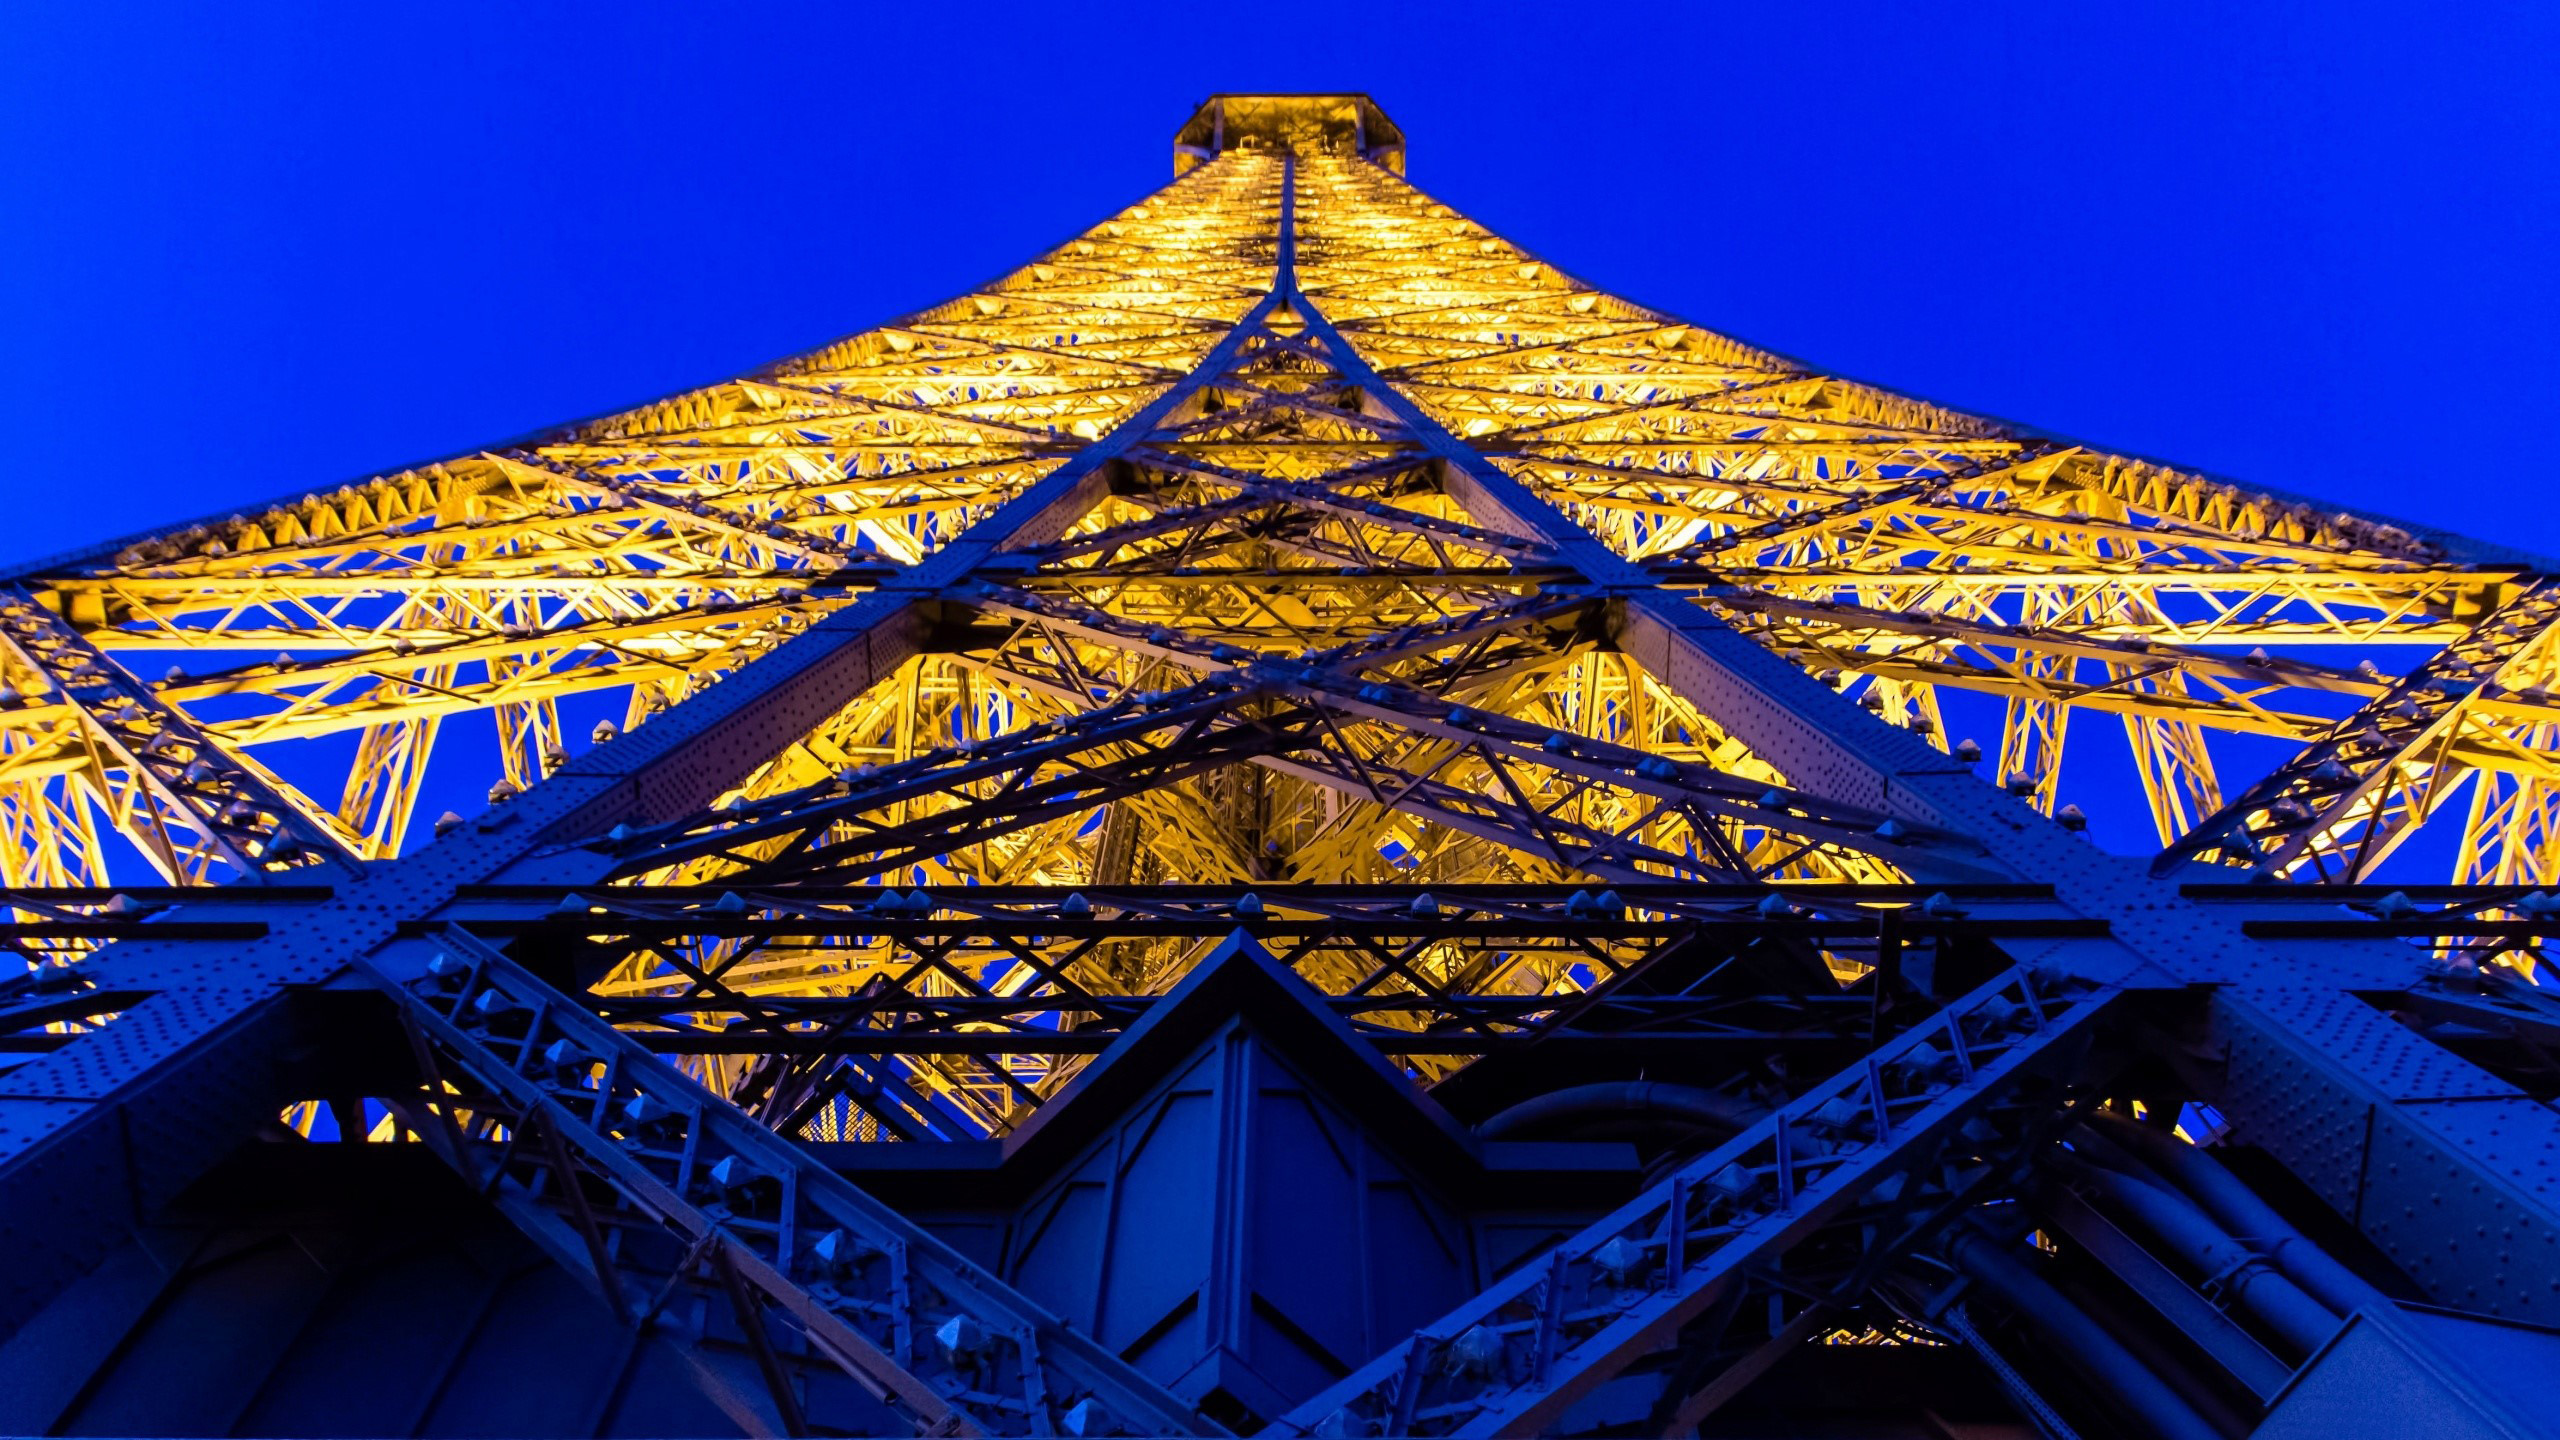 Wallpaper Perspective of the Eiffel Tower